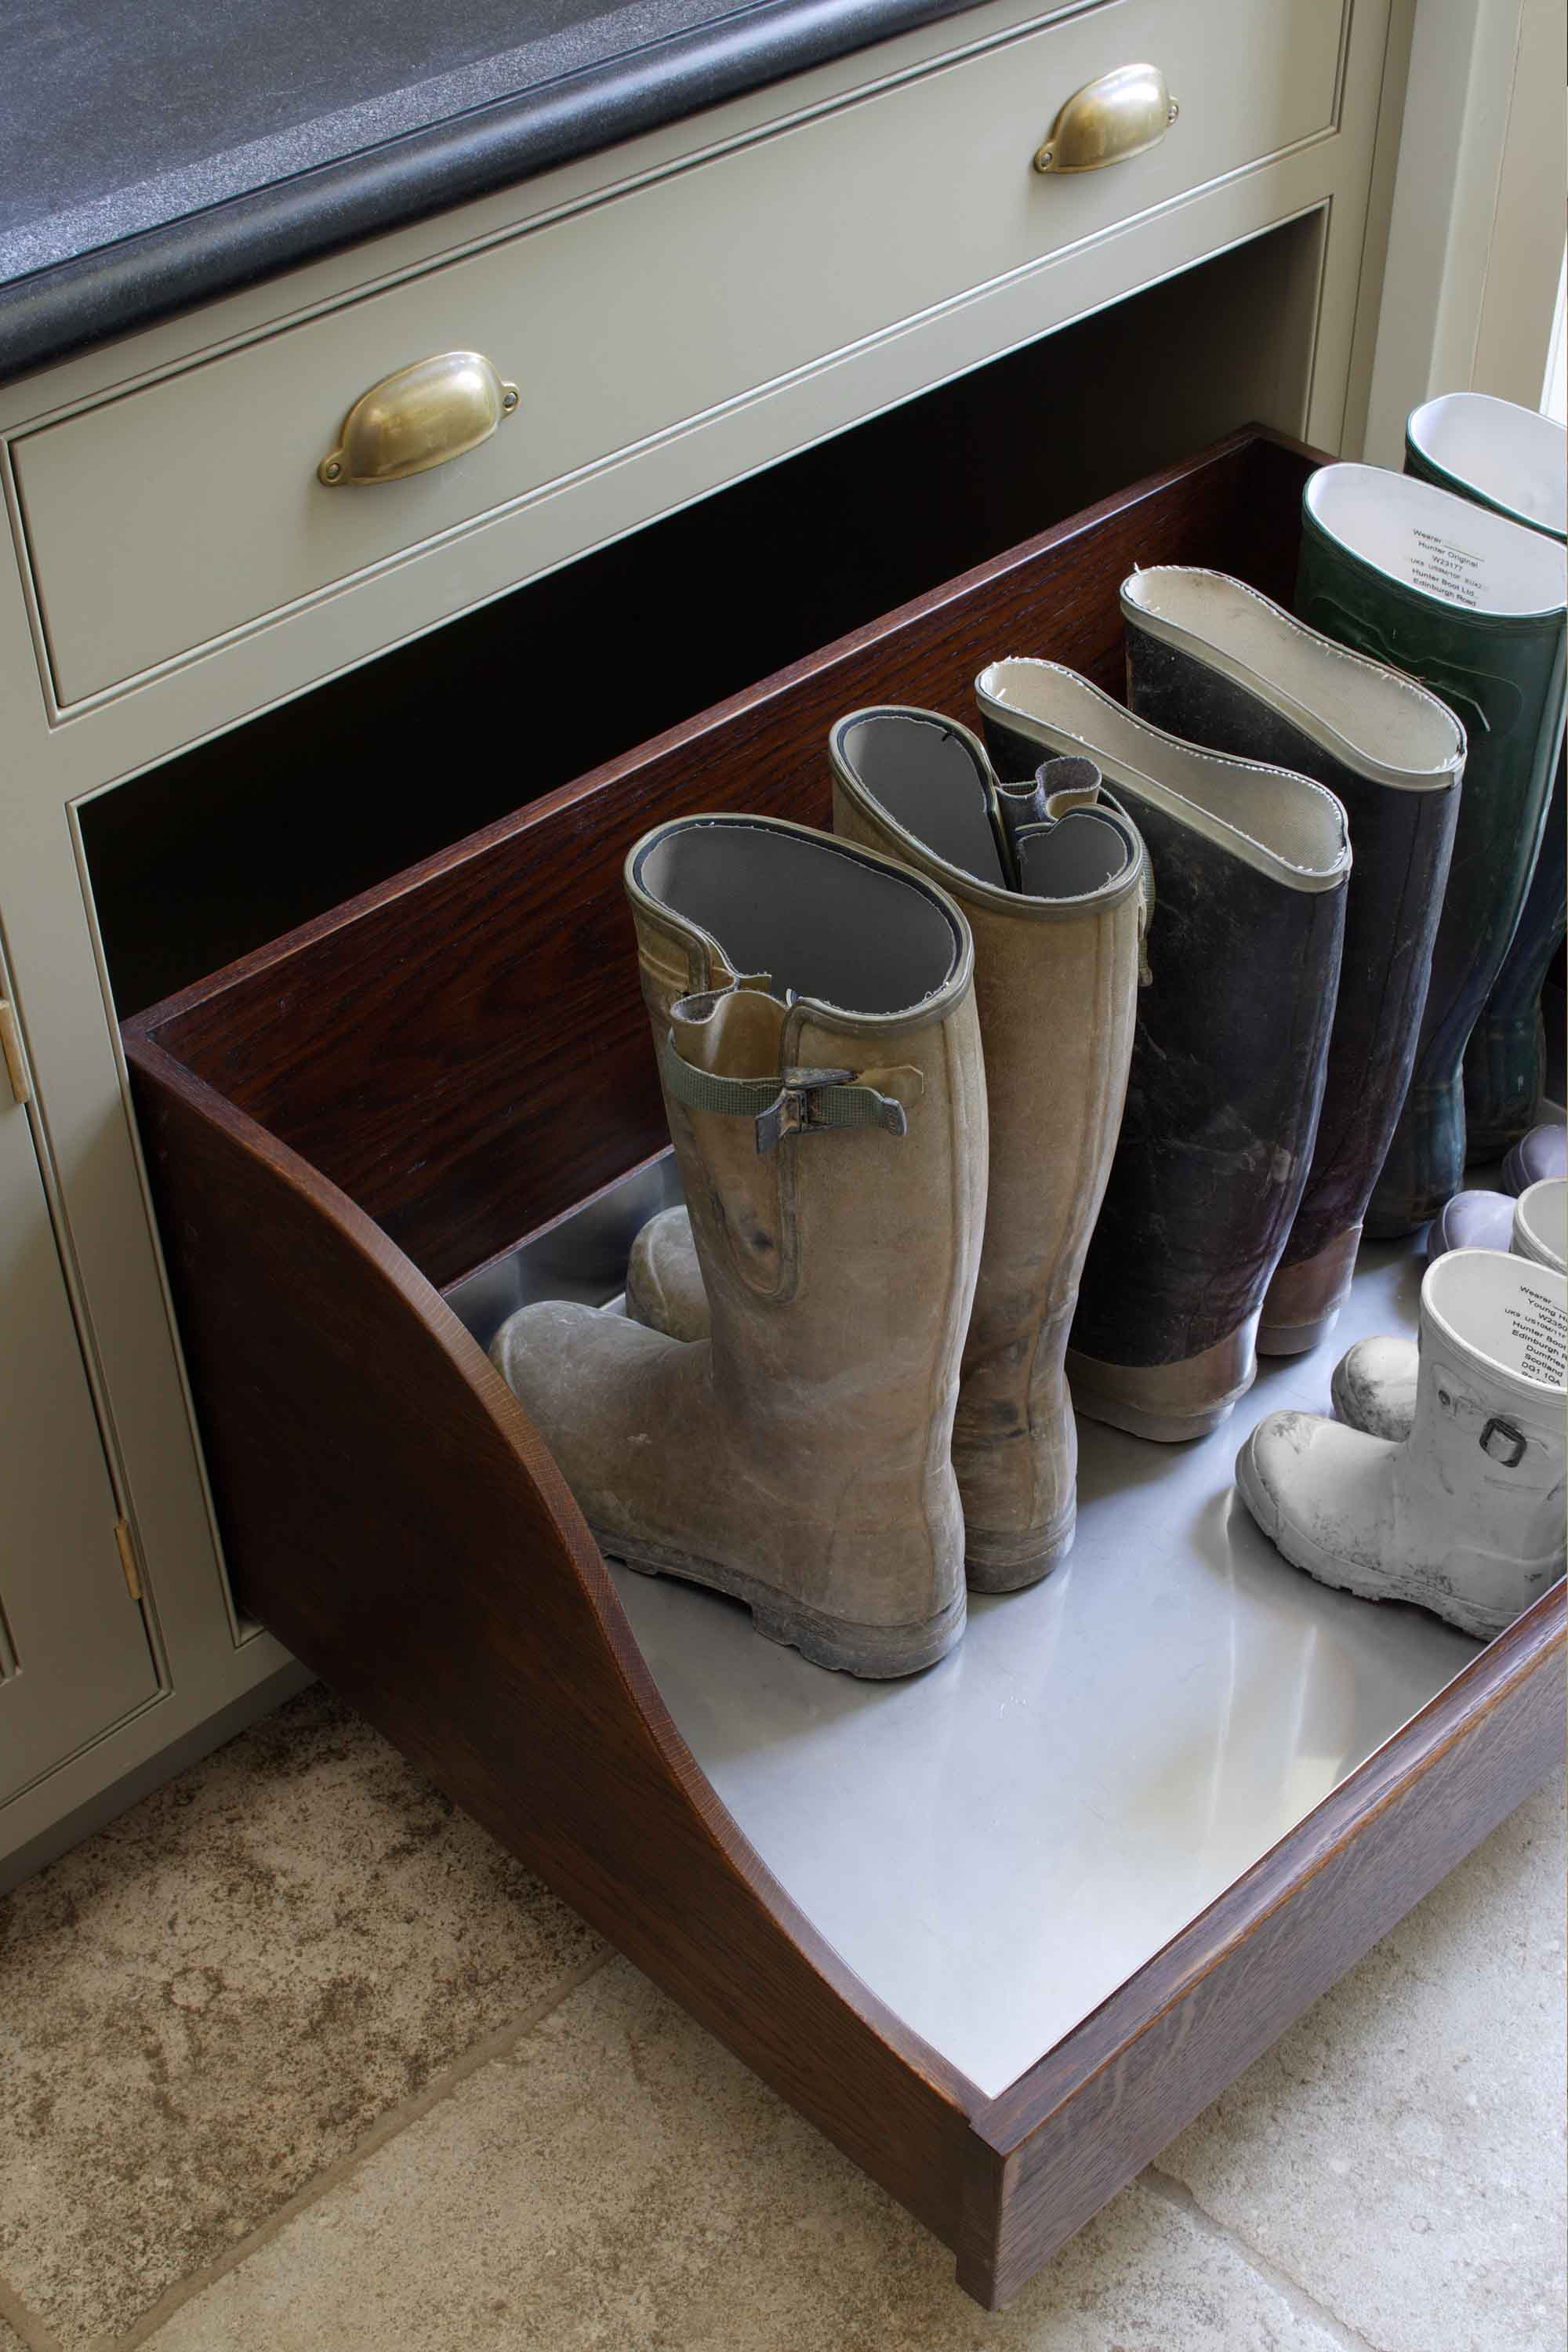 Boot drawers have removable stainless steel linings